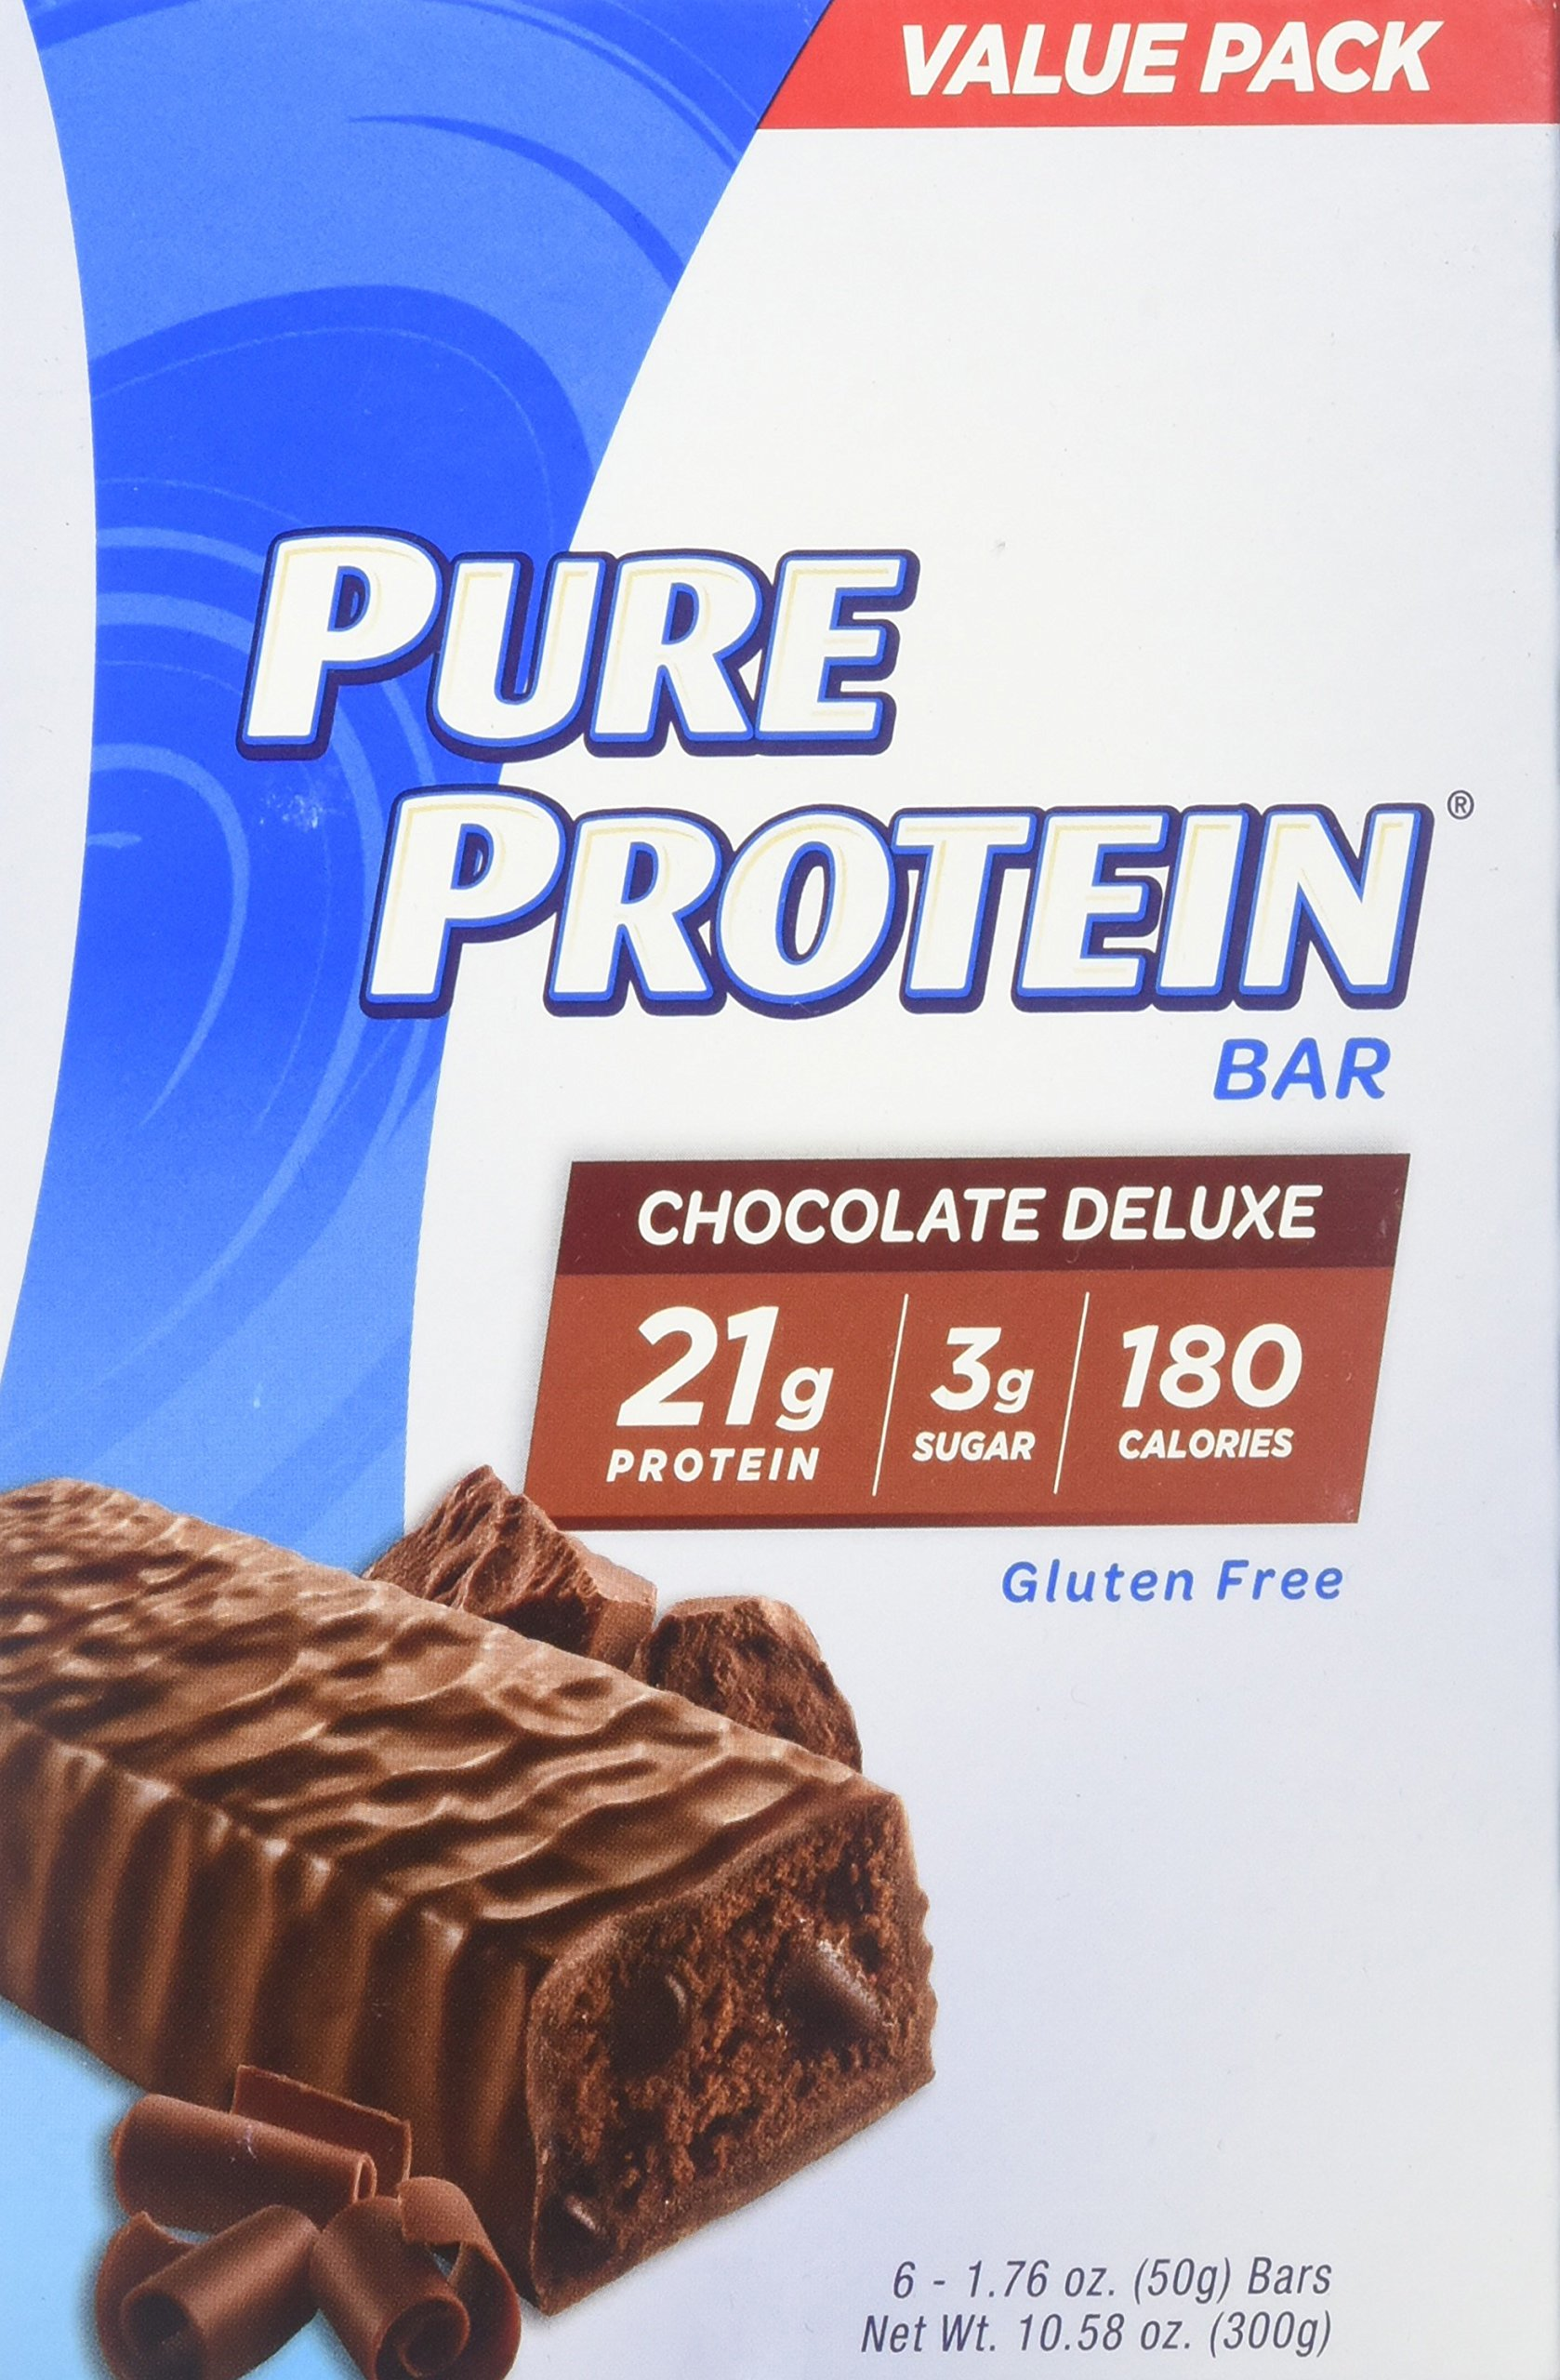 Pure Protein Bars, High Protein, Nurtritious Snacks to Support Energy, Low Sugar, Gluten Free, Chocolate Deluxe, 1.76oz, 6 Pack, 2 Pack